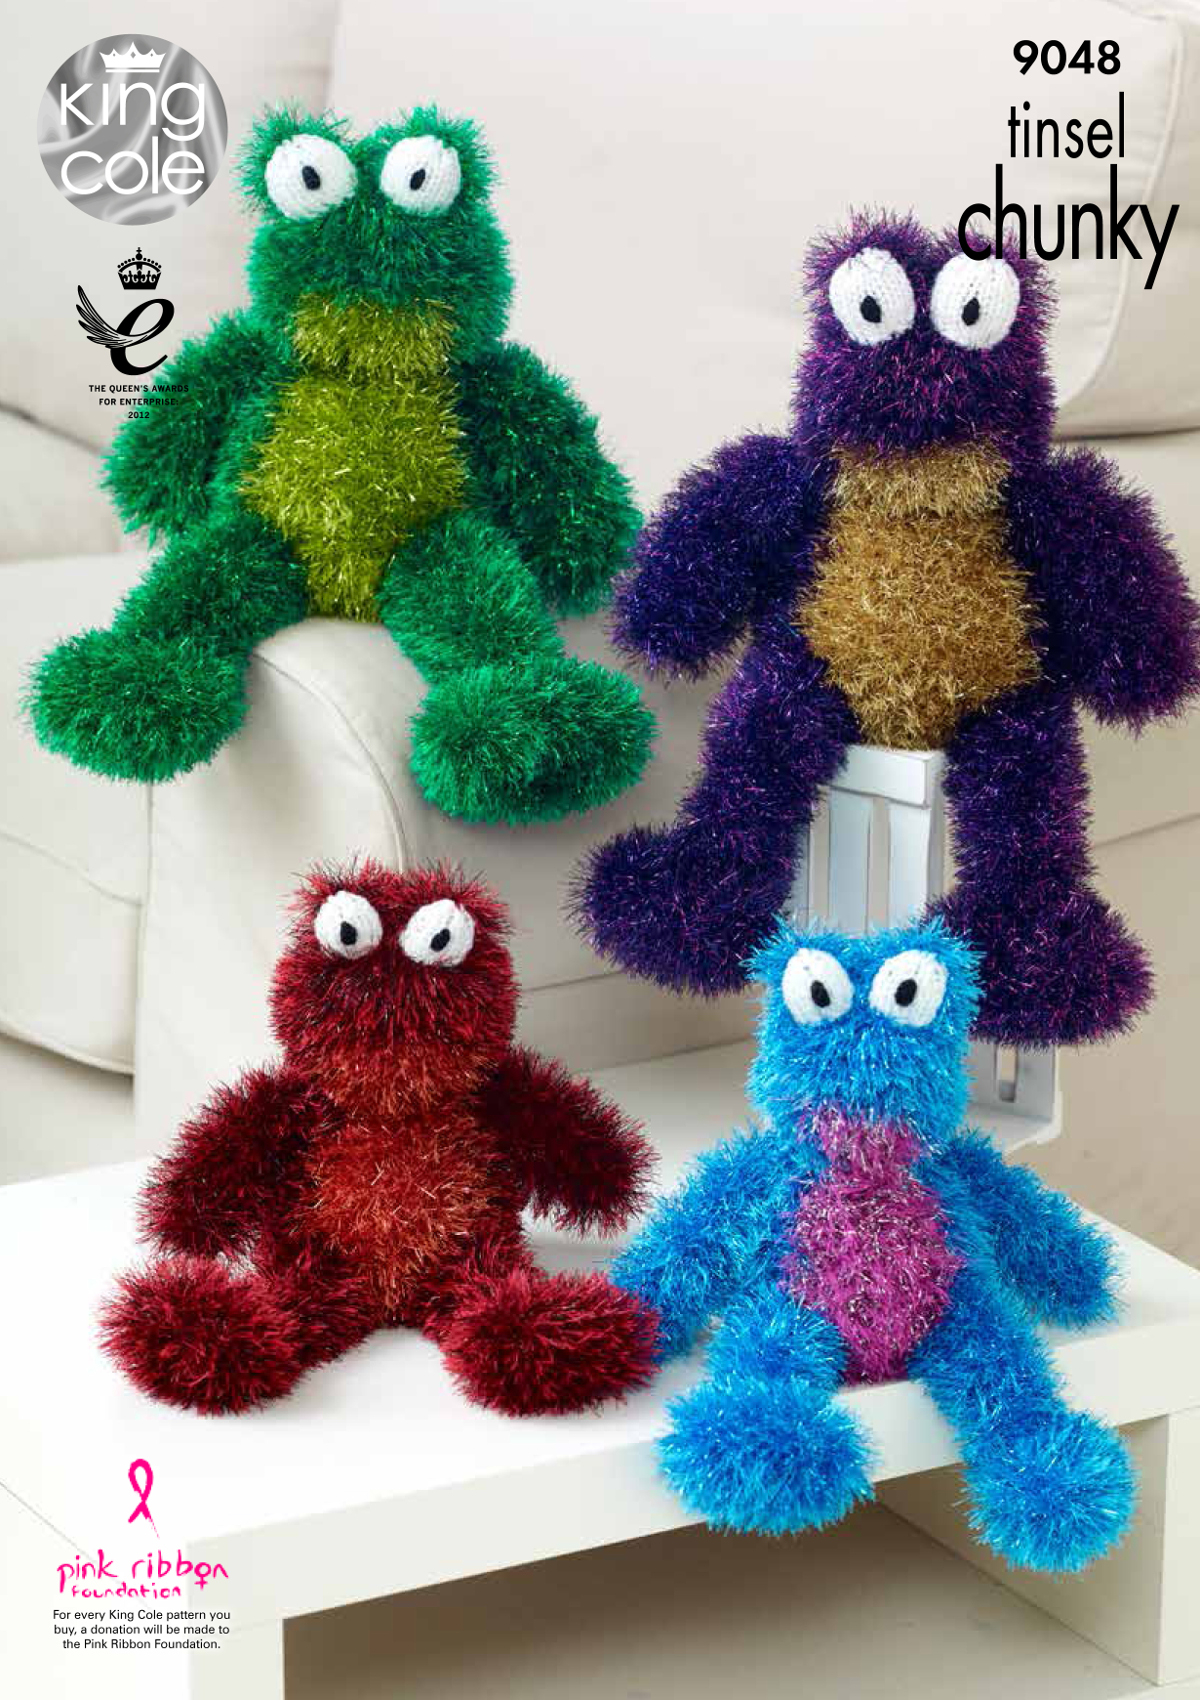 Knitting Patterns For Baby Toys Details About Tinsel Chunky Knitting Pattern Small Or Large Frog Animal Toy King Cole 9048